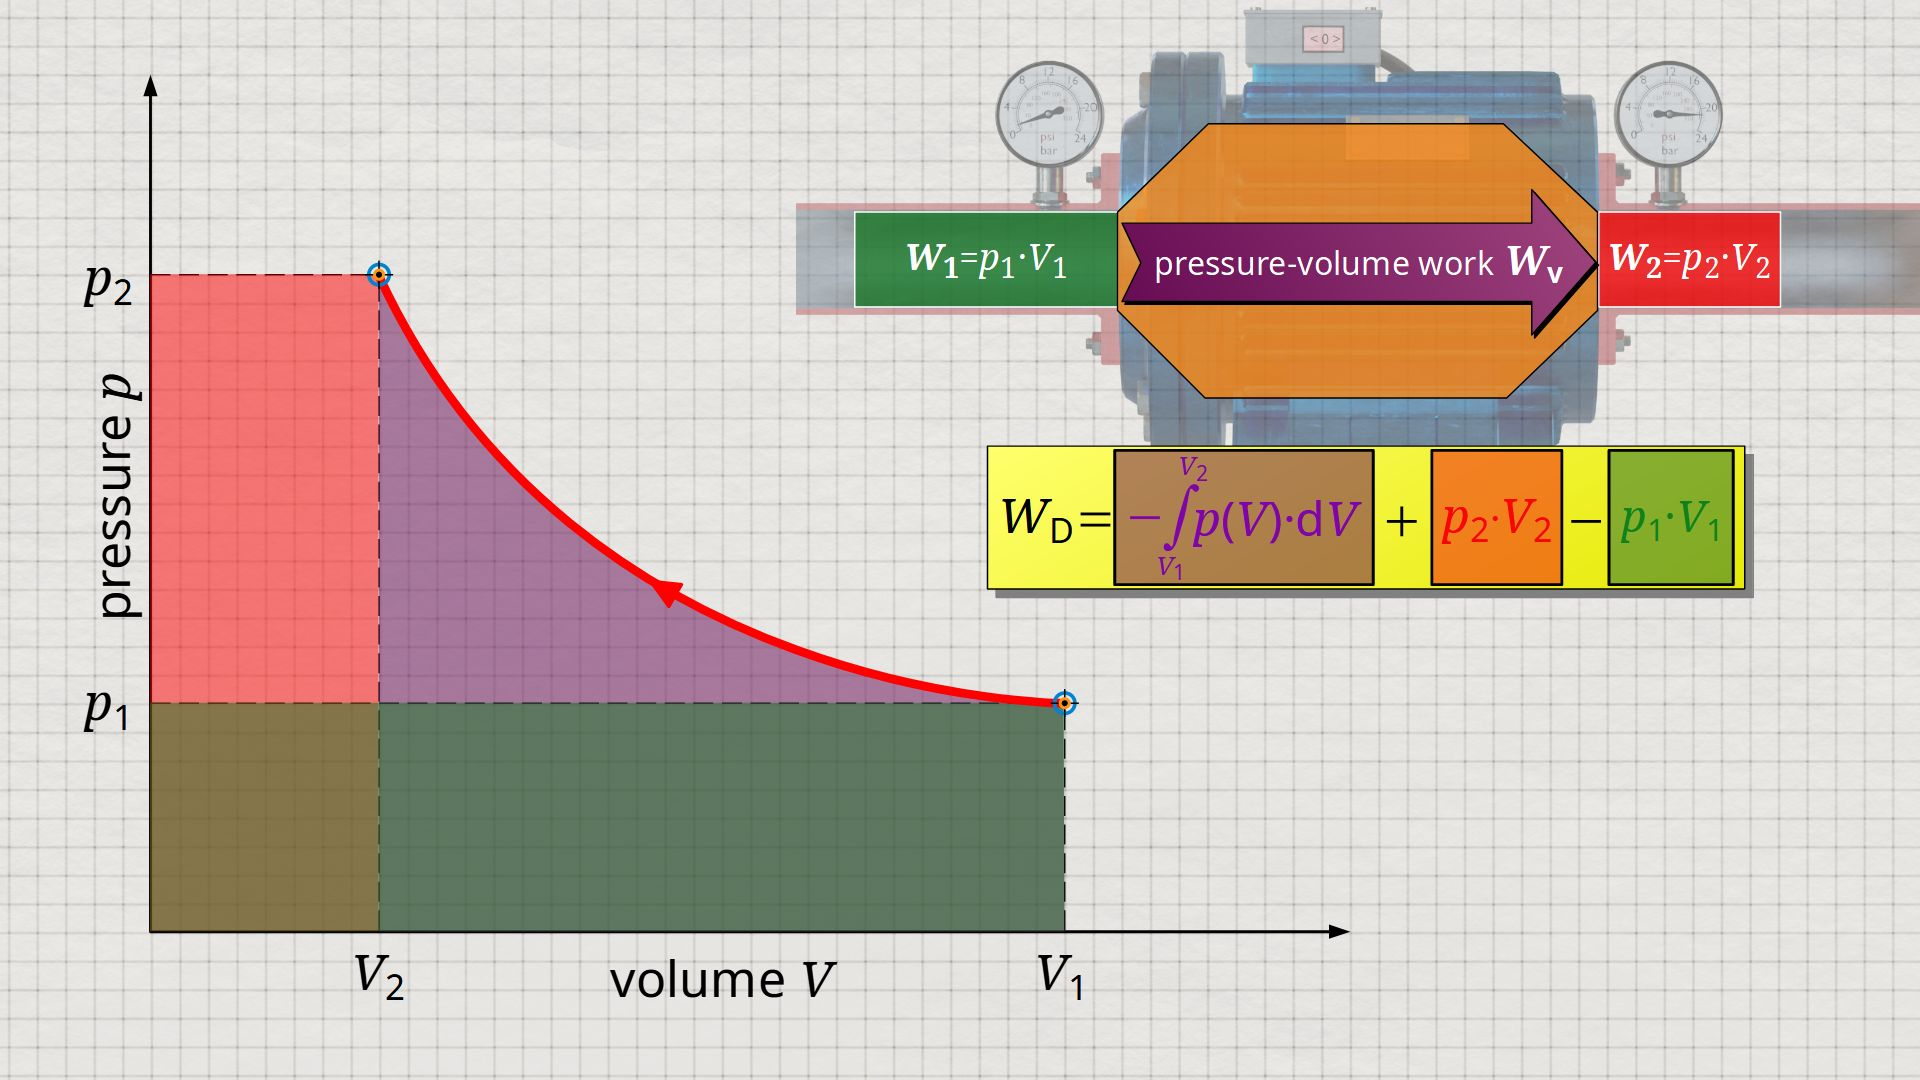 Derivation of the flow process work as the area left of the p(V)-function in the volume-pressure diagram